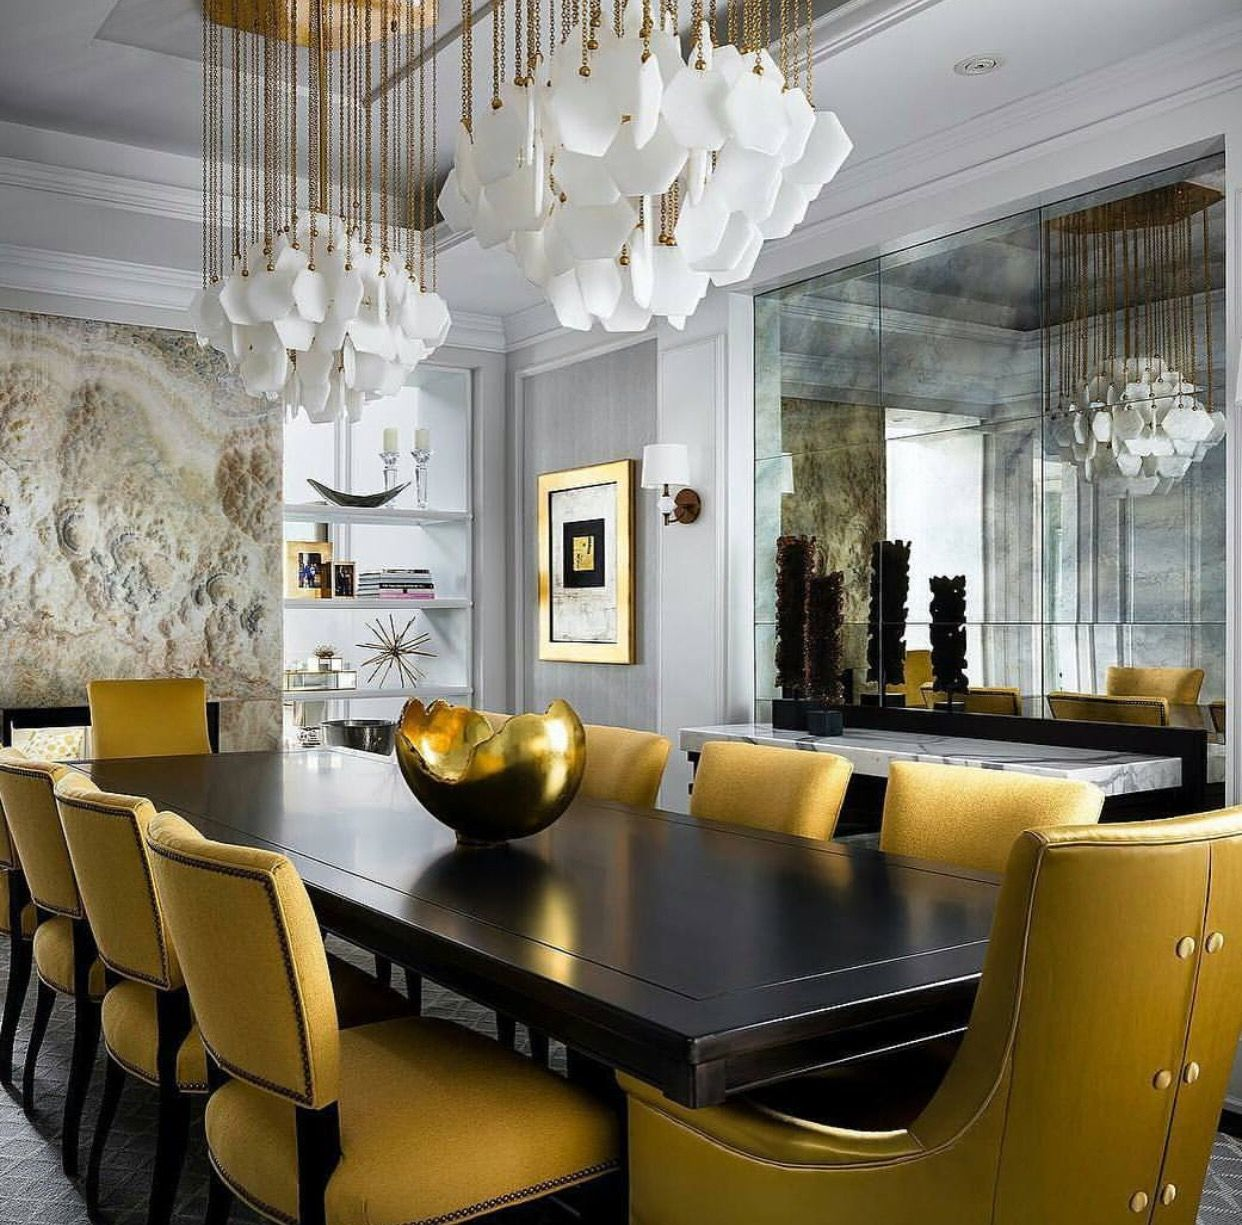 Gorgeous Dining Room In Metal Tones